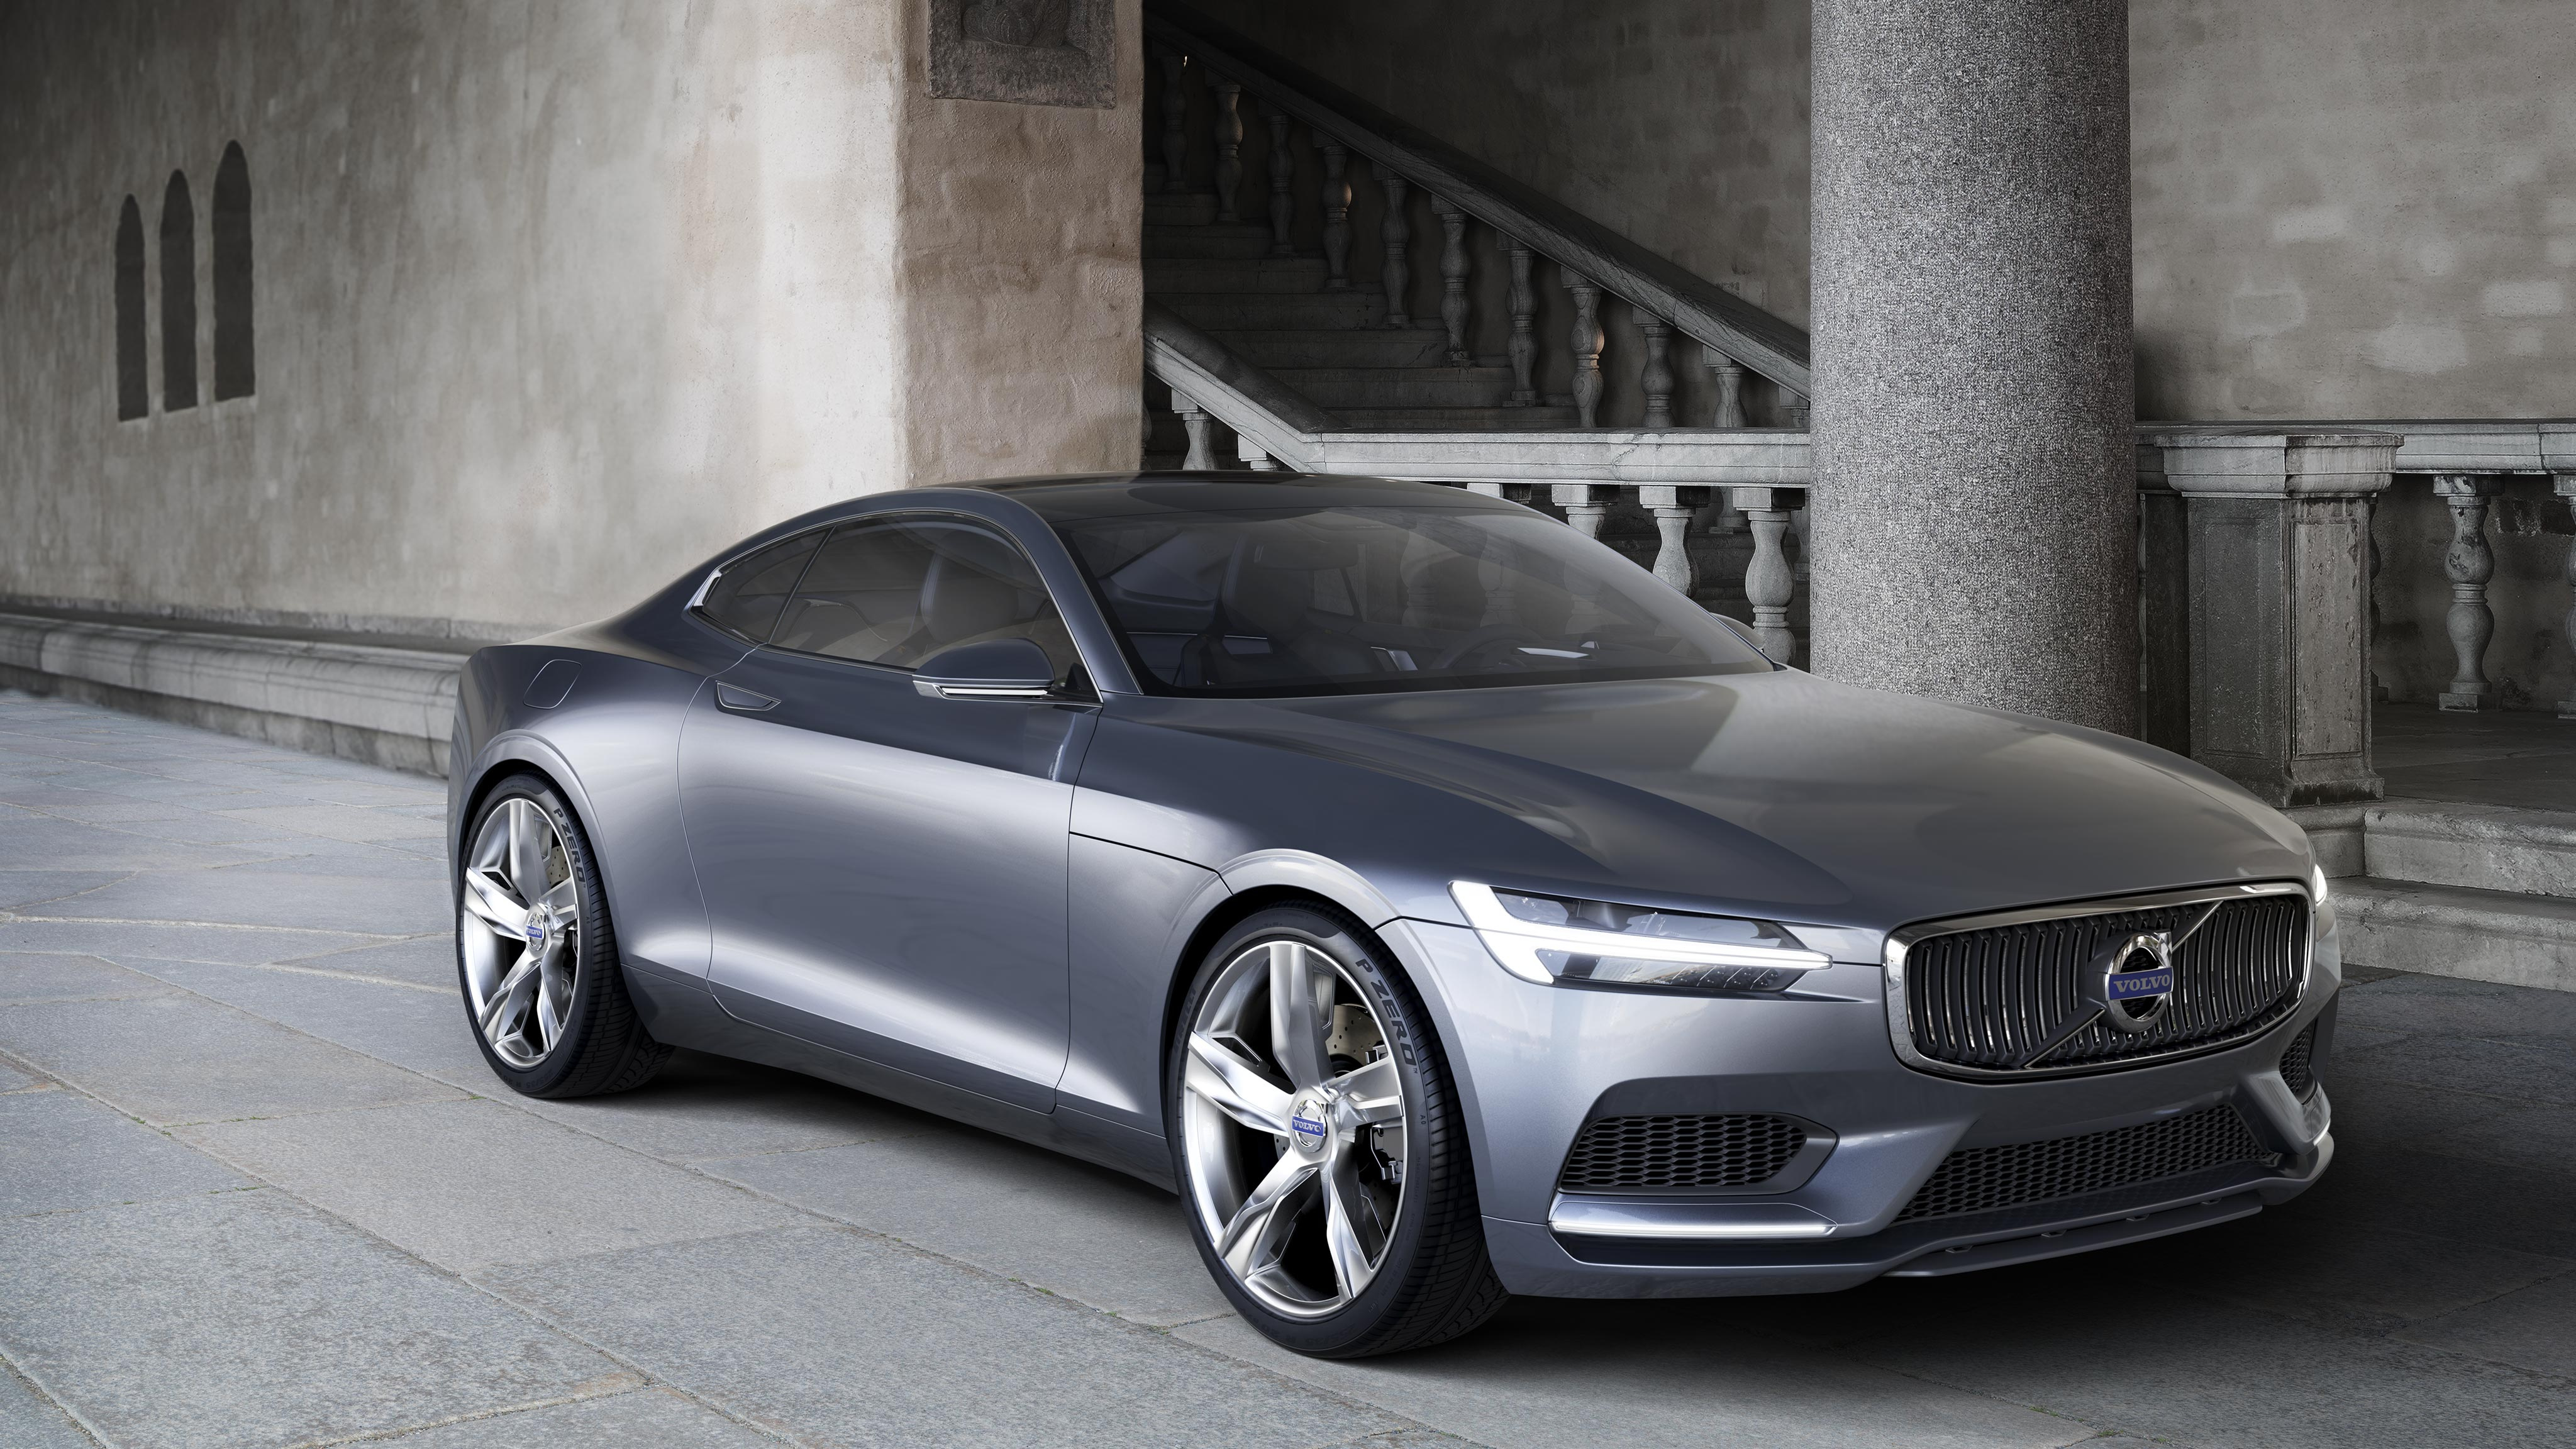 Volvo Concept Coupe >> Concept Coupe | Volvo Cars